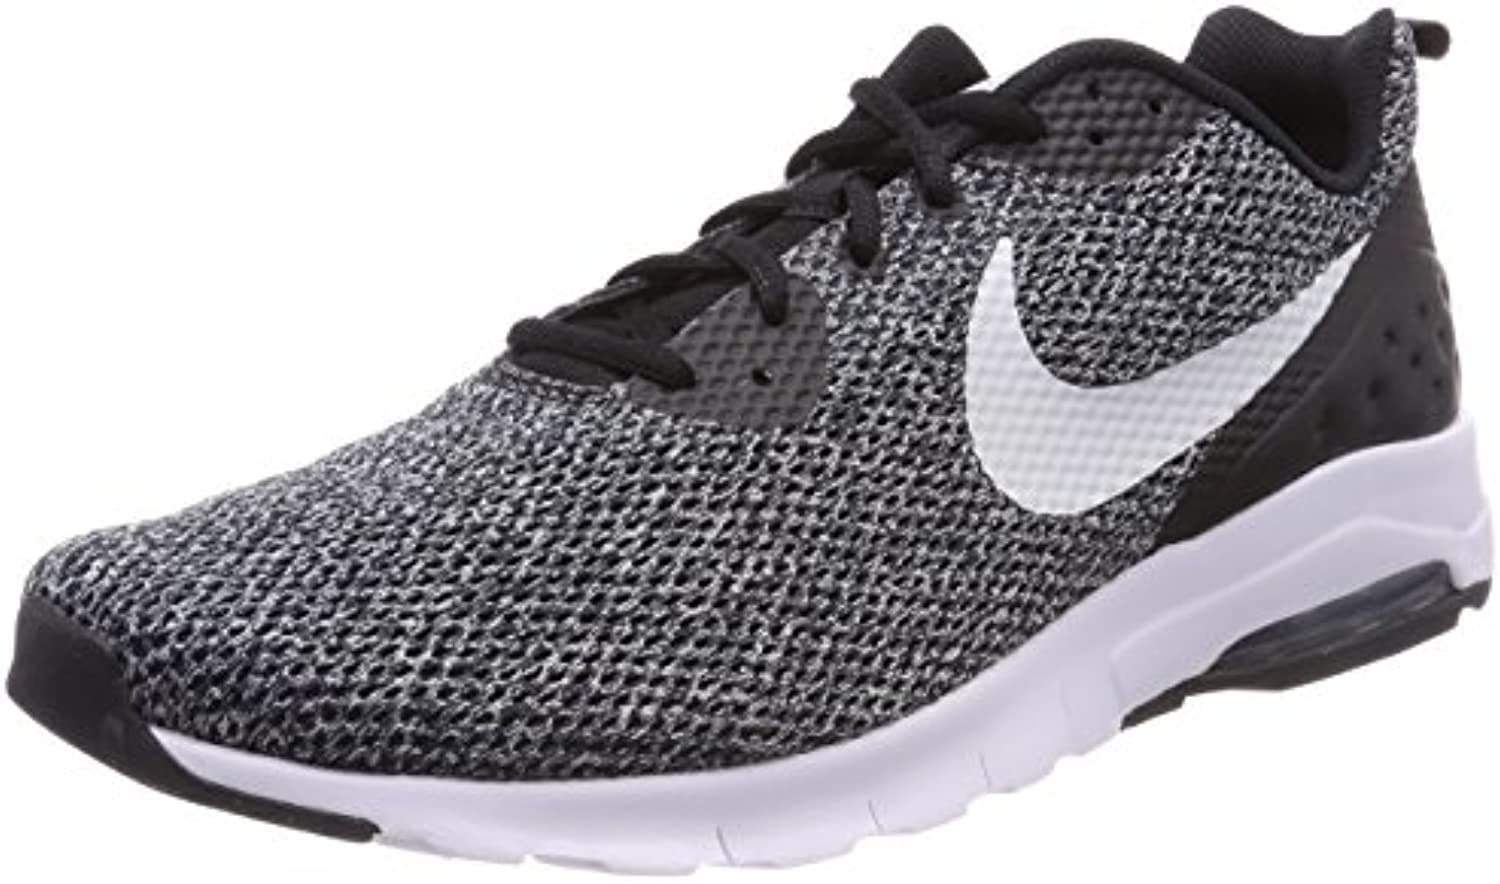 Man's/Woman's NIKE Men''s Air Max Motion Lw Se Low-Top Sneakers design Best-selling worldwide Strong value professional design Sneakers WR34097 4ddc3b